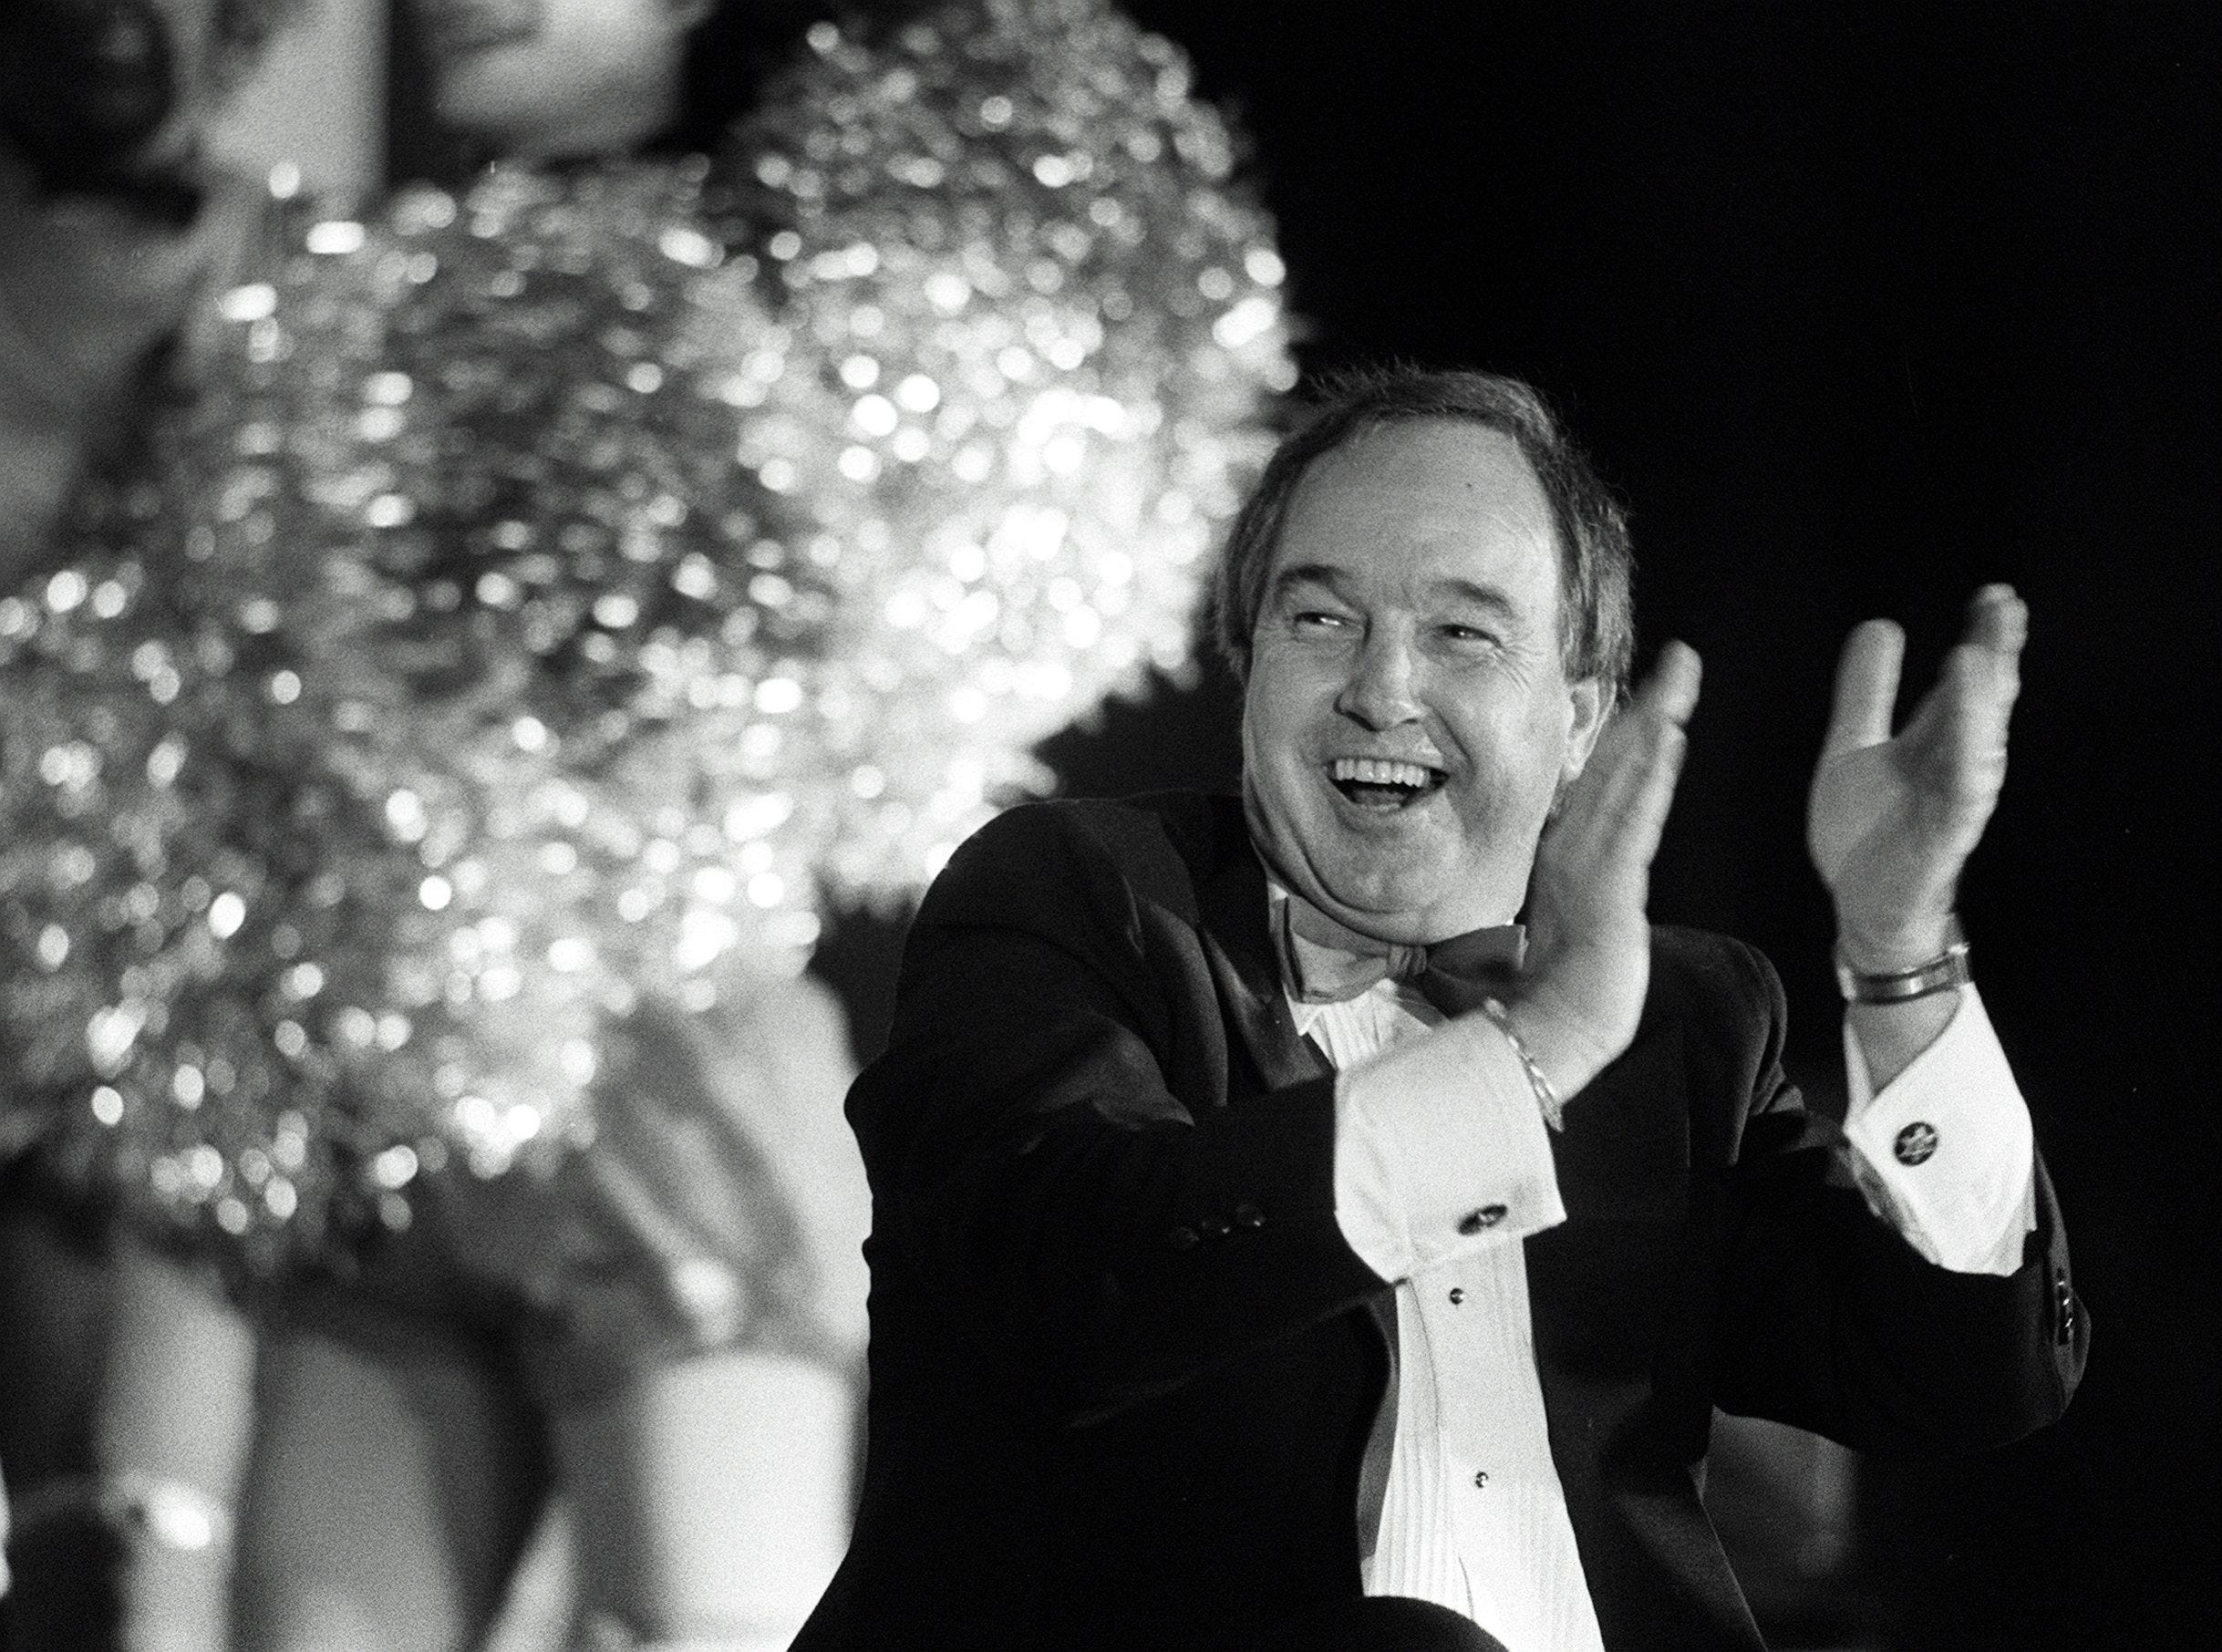 Memphis Showboats coach Pepper Rodgers shares in the laughter during a roast where he was the object of attention at The Peabody on July 26, 1984. Among those taking their turn at the coach were Avron Fogelman, John Grisanti and Showboats quarterback Walter Lewis. Proceeds from the event went to the Big Brothers/Big Sisters of Greater Memphis.